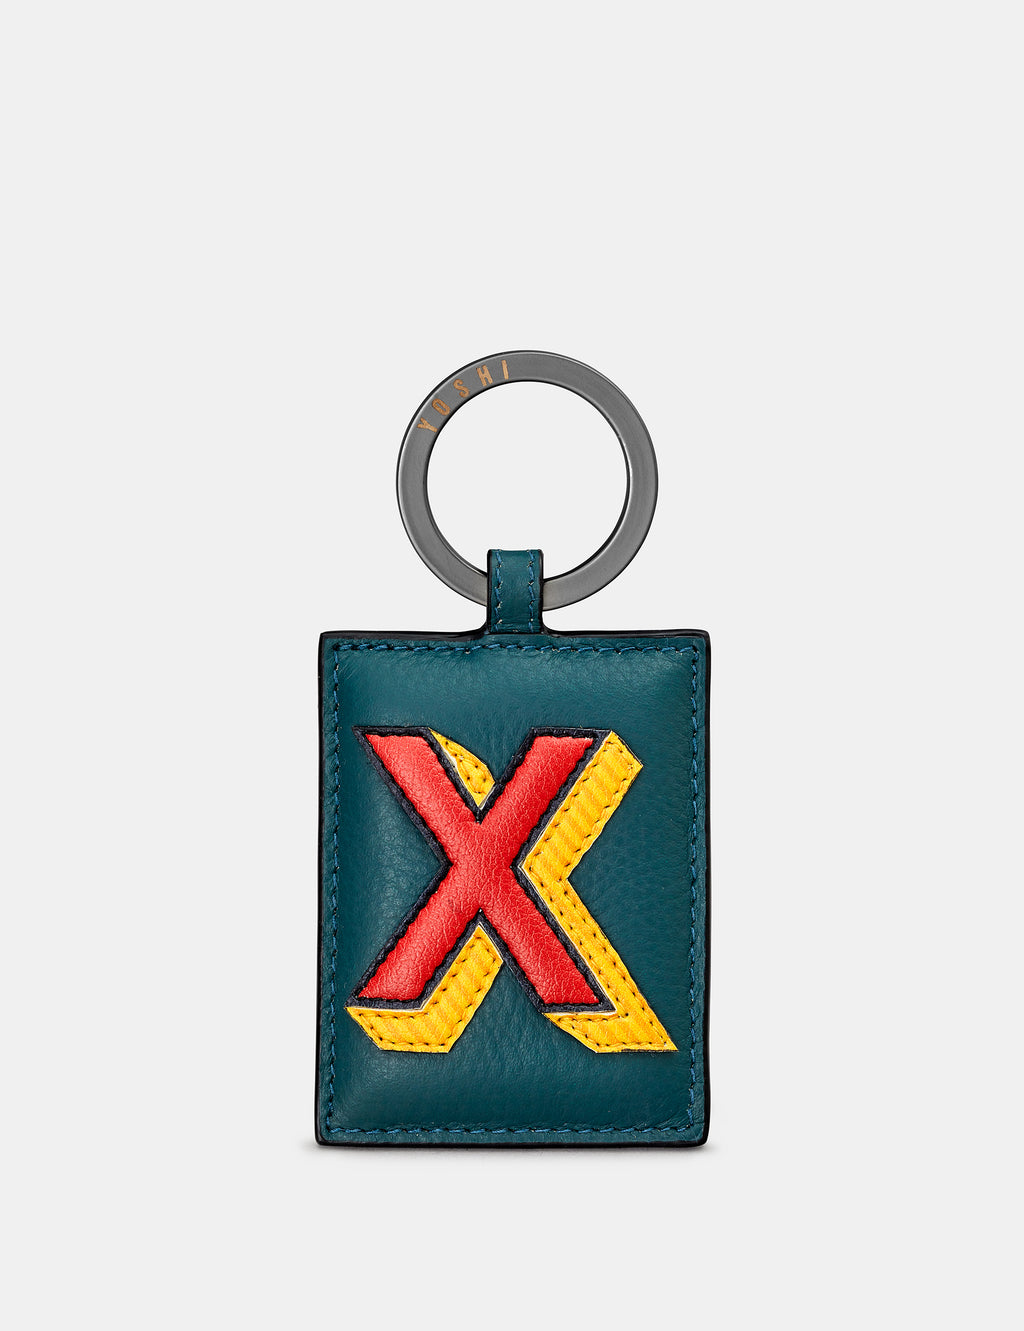 X Initial Teal Leather Keyring